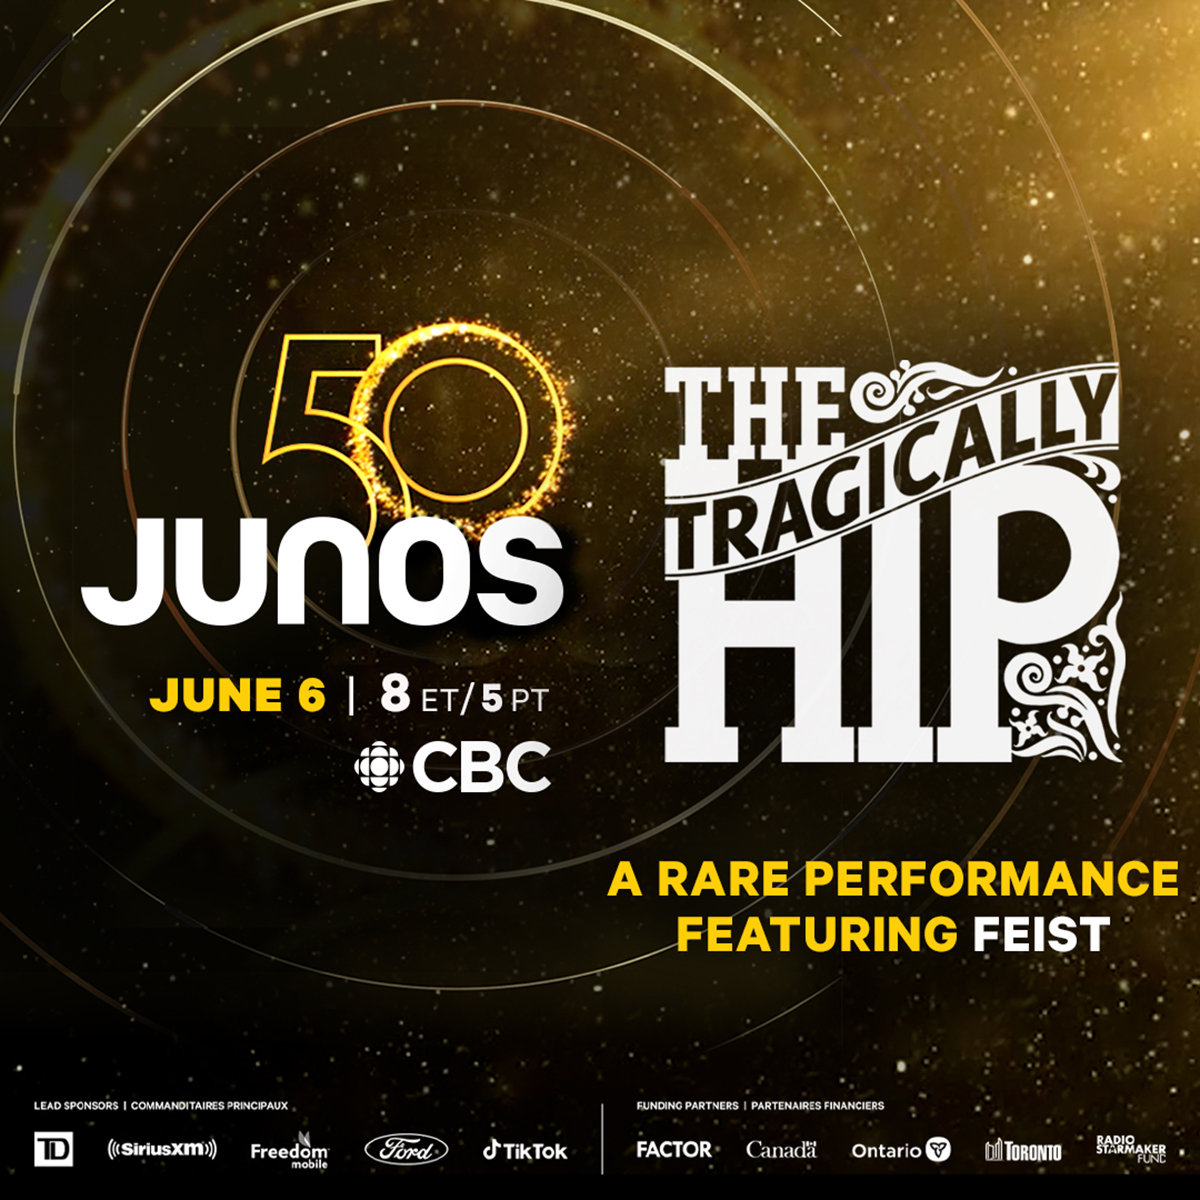 The Tragically Hip set to perform with Feist at The 50th Annual JUNO Awards on CBC